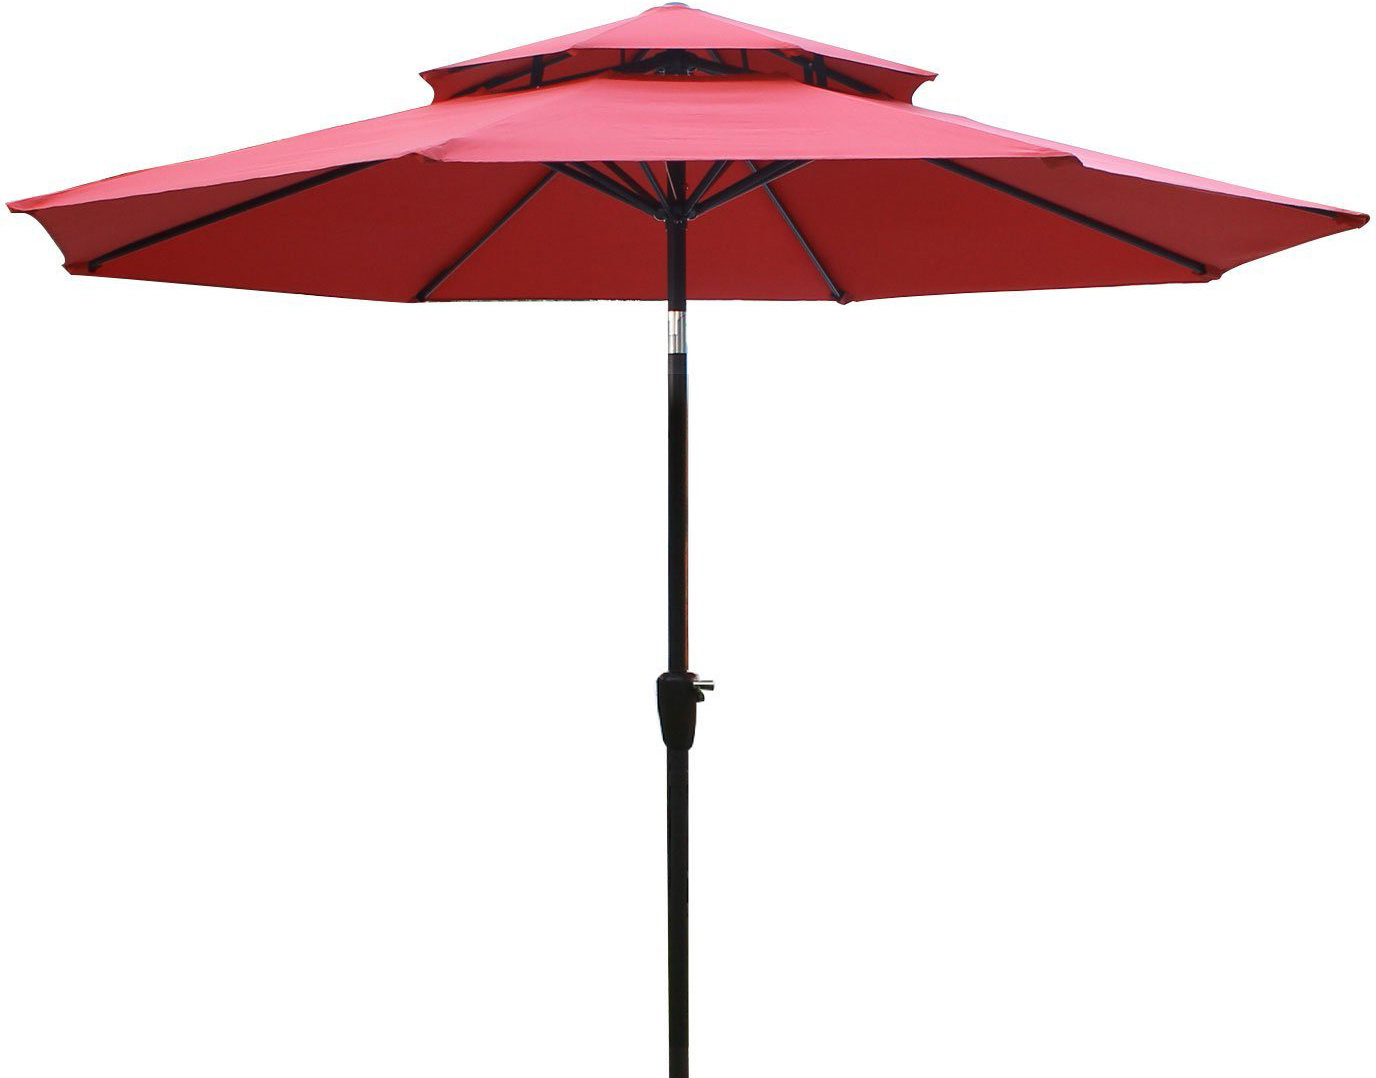 Fashionable Dimond 9' Market Umbrella With Lizarraga Market Umbrellas (View 5 of 20)